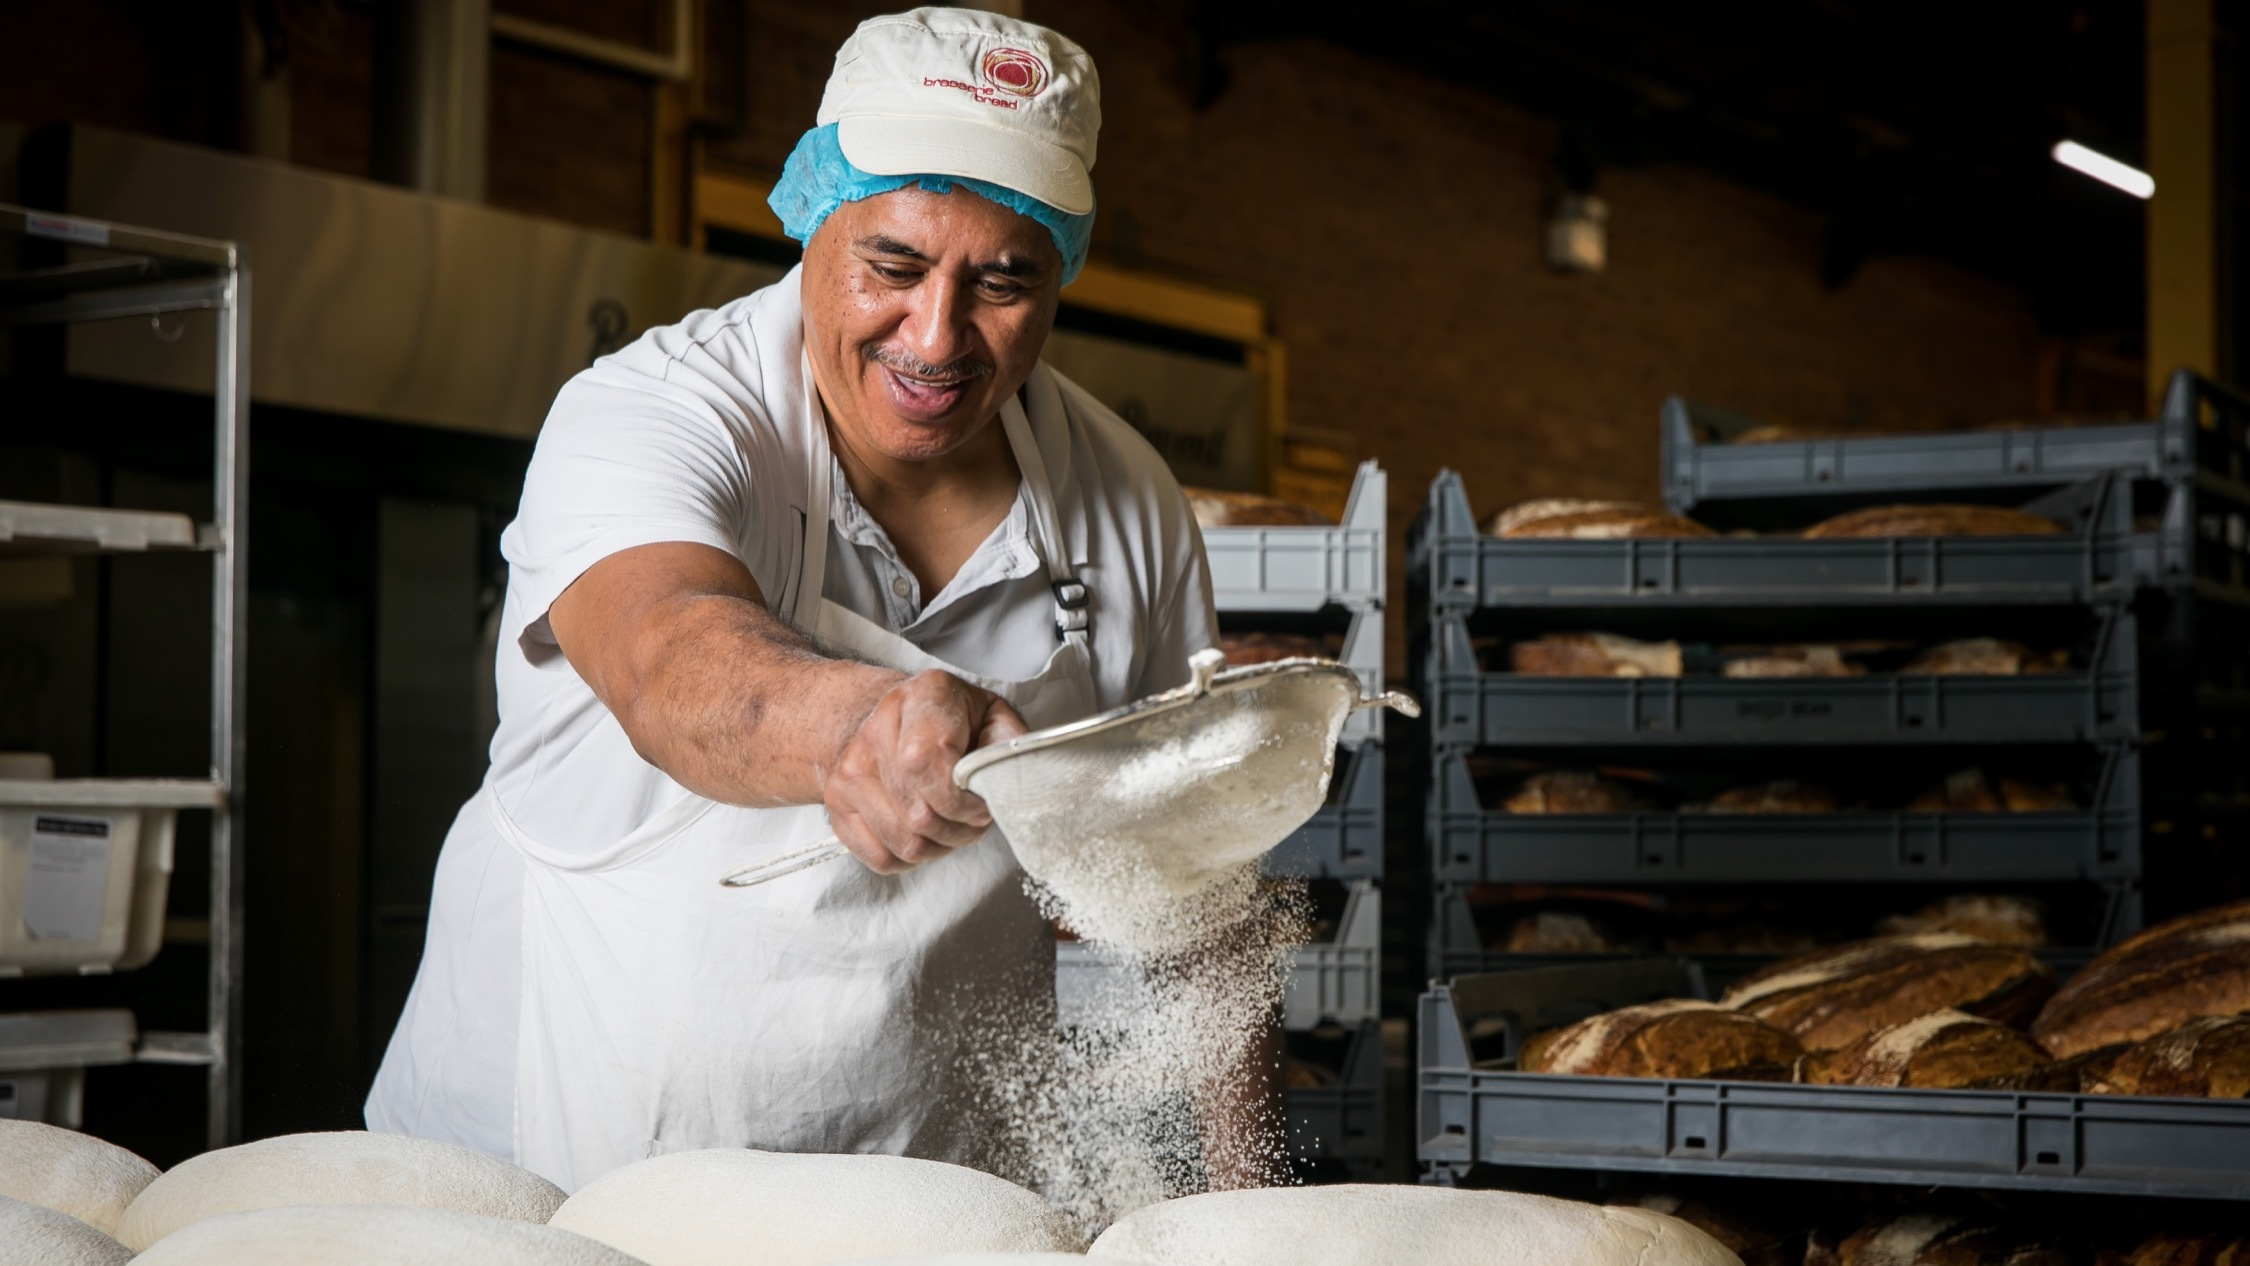 Baker shaking flour over dough at Brasserie Bread